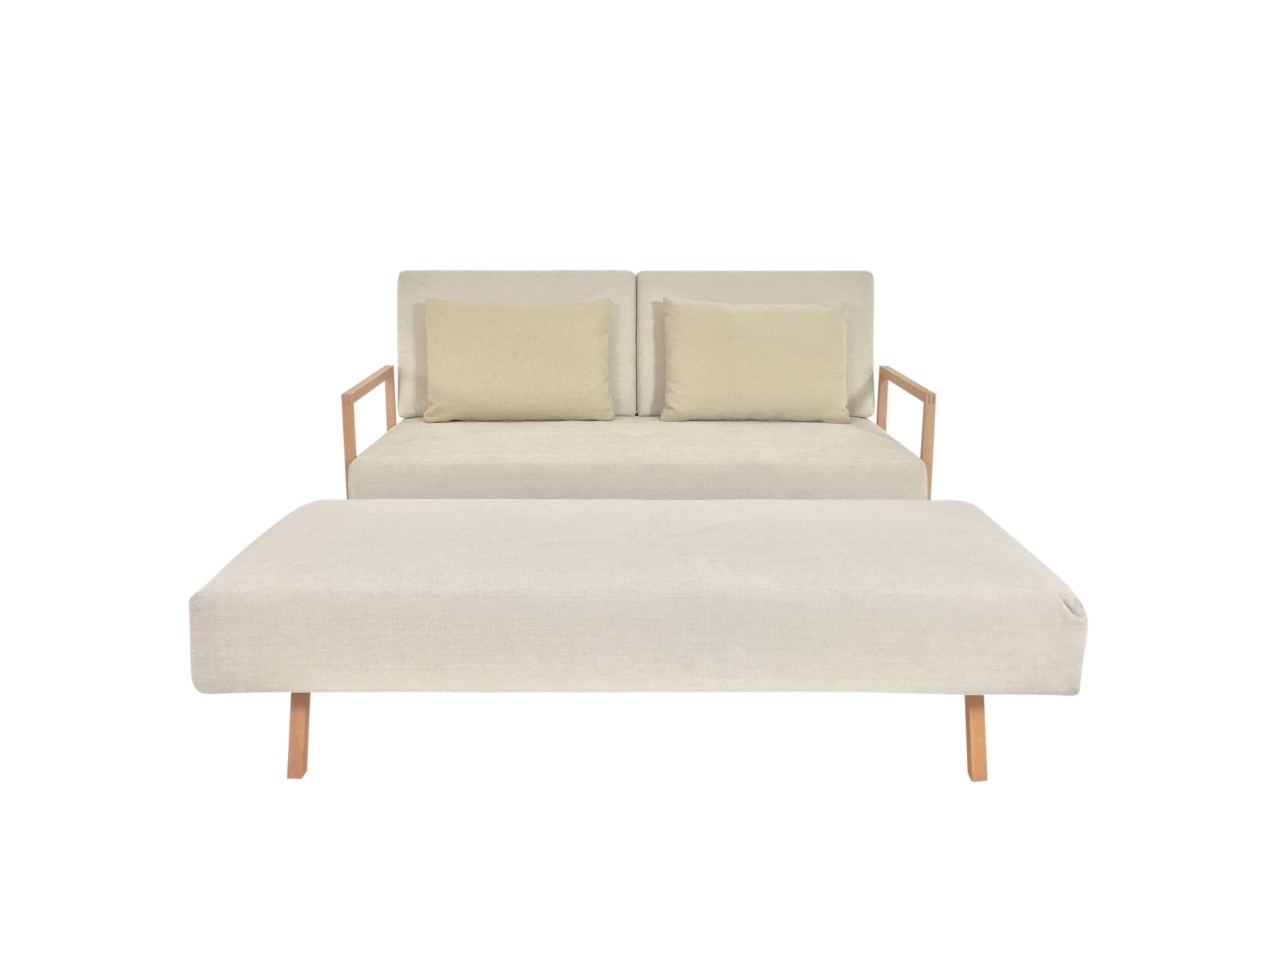 br hl concert sofa mit hockerbank in stoff offwhite mit. Black Bedroom Furniture Sets. Home Design Ideas